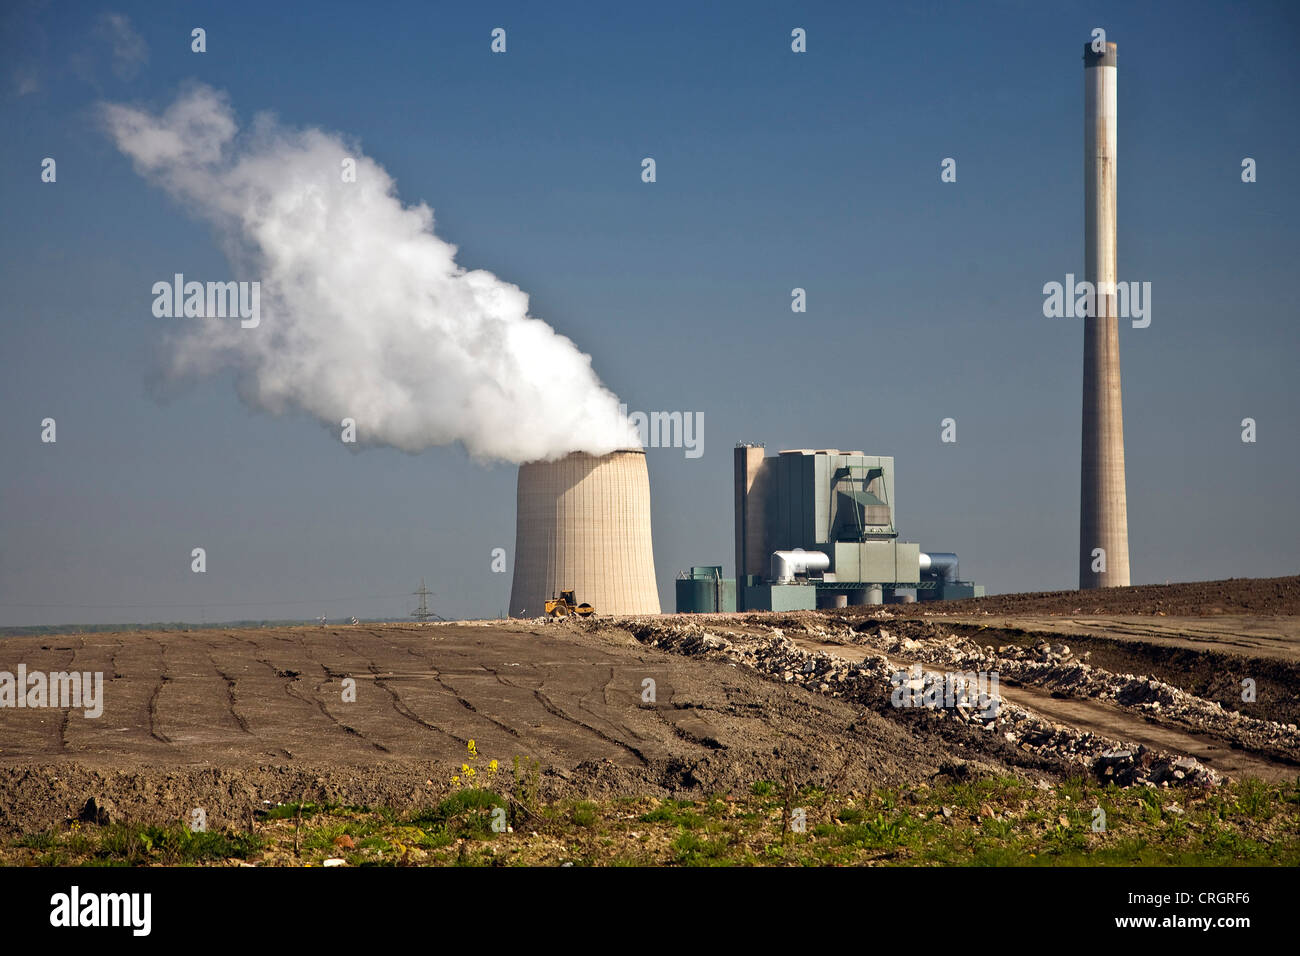 Holz Factory view from grosses holz stockpile on coal fired power plant near